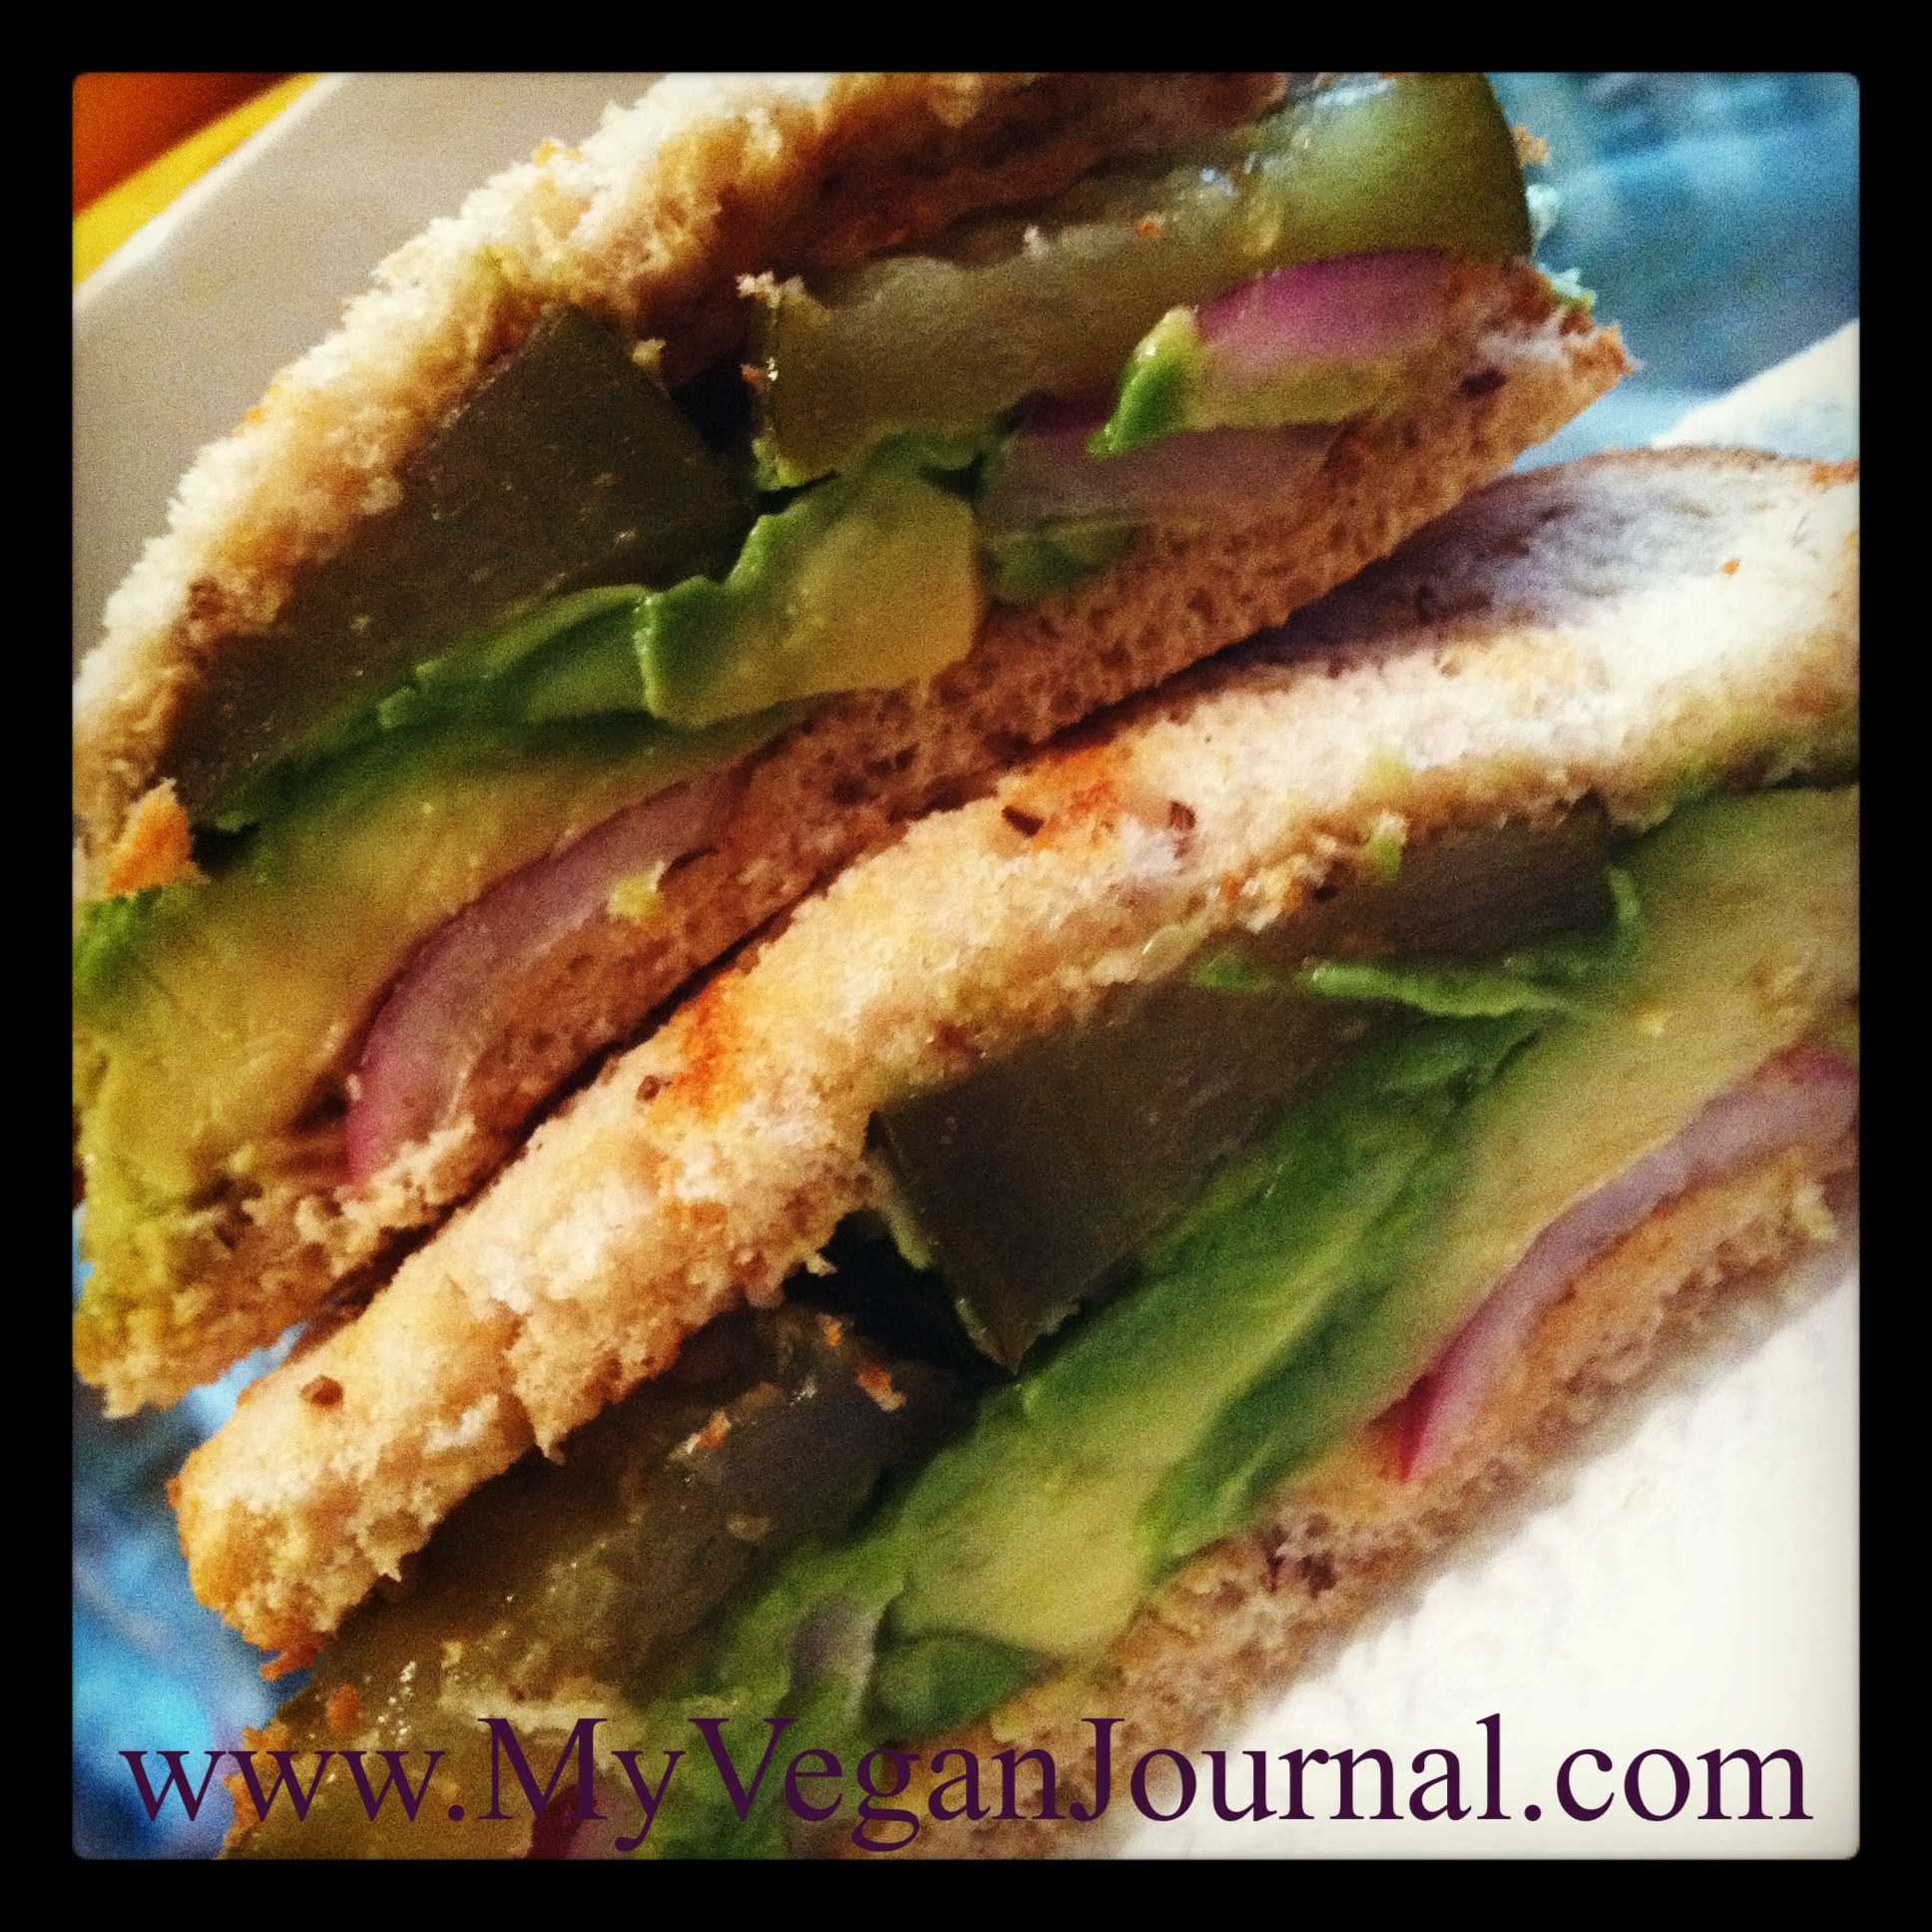 avocado sandwich 2014 11 24 sardine avocado sardine avocado sandwiches ...